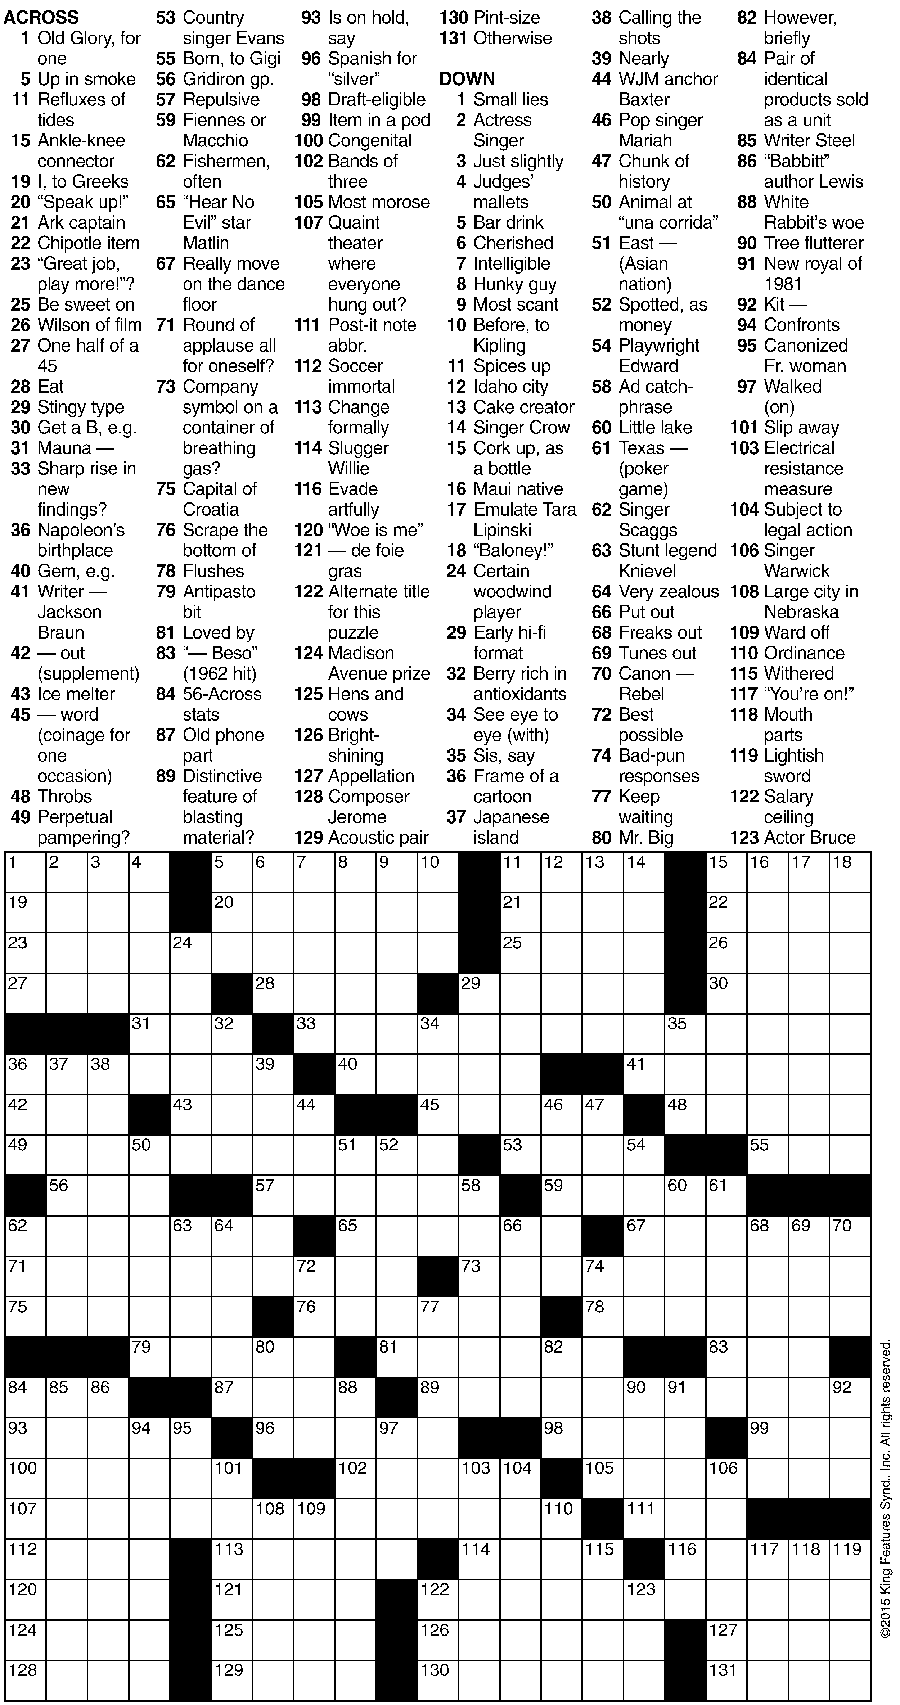 crossword.png